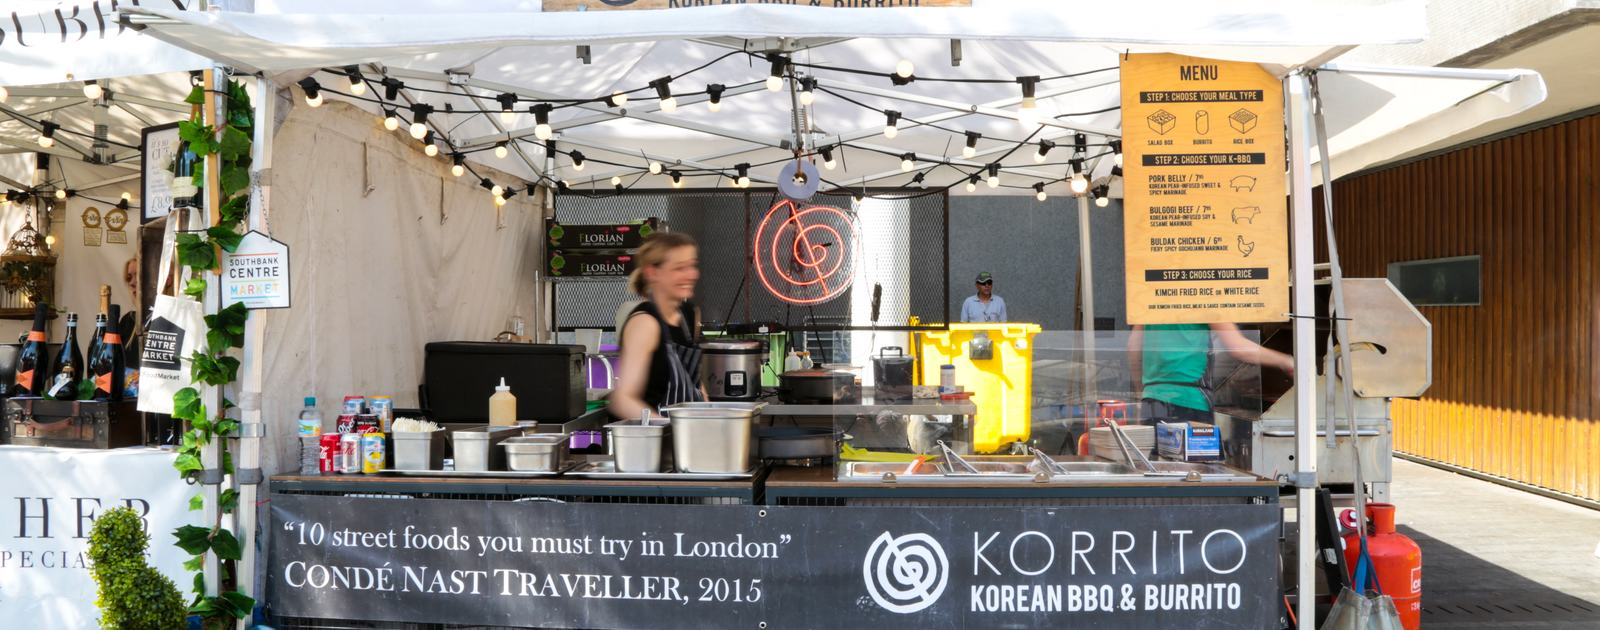 Southbank Centre Food Market.Stall 4 - Korrito.August 2016